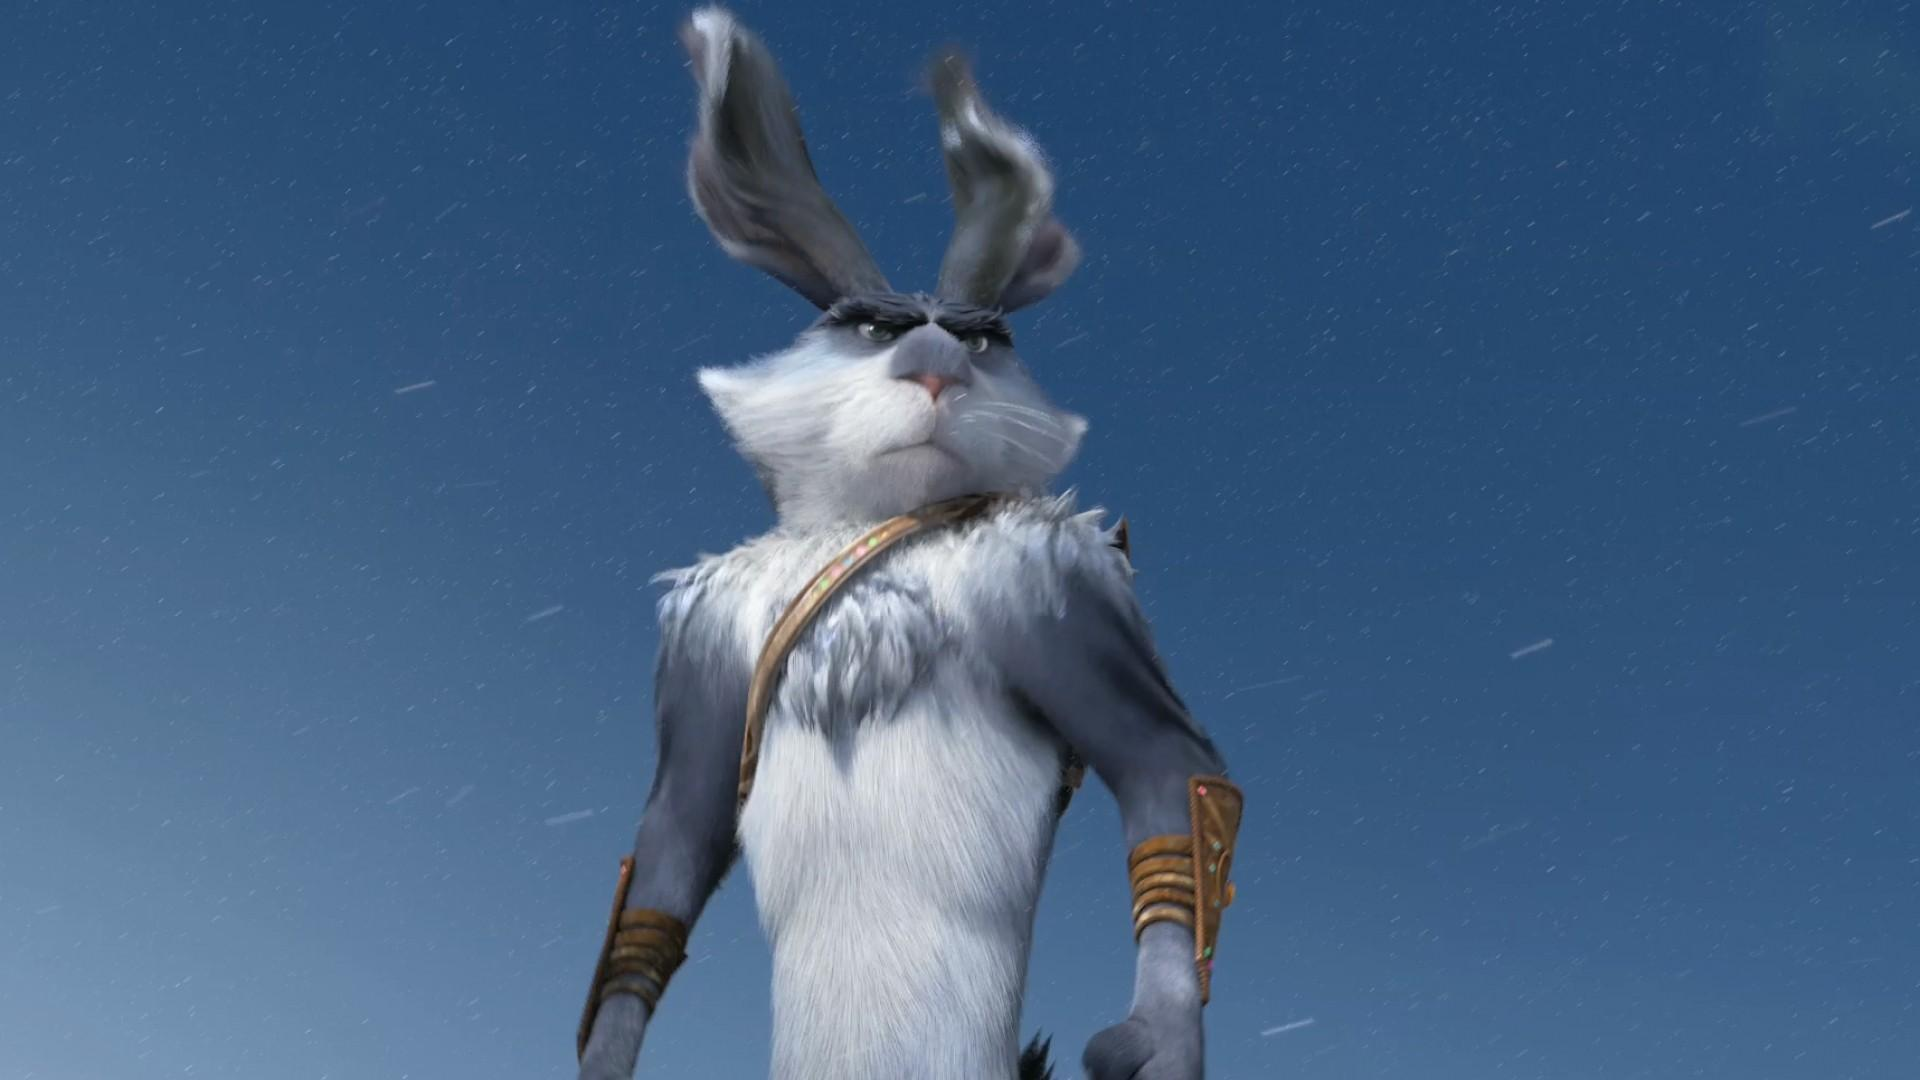 Who is your fave Guardian from Rise of the Guardians?